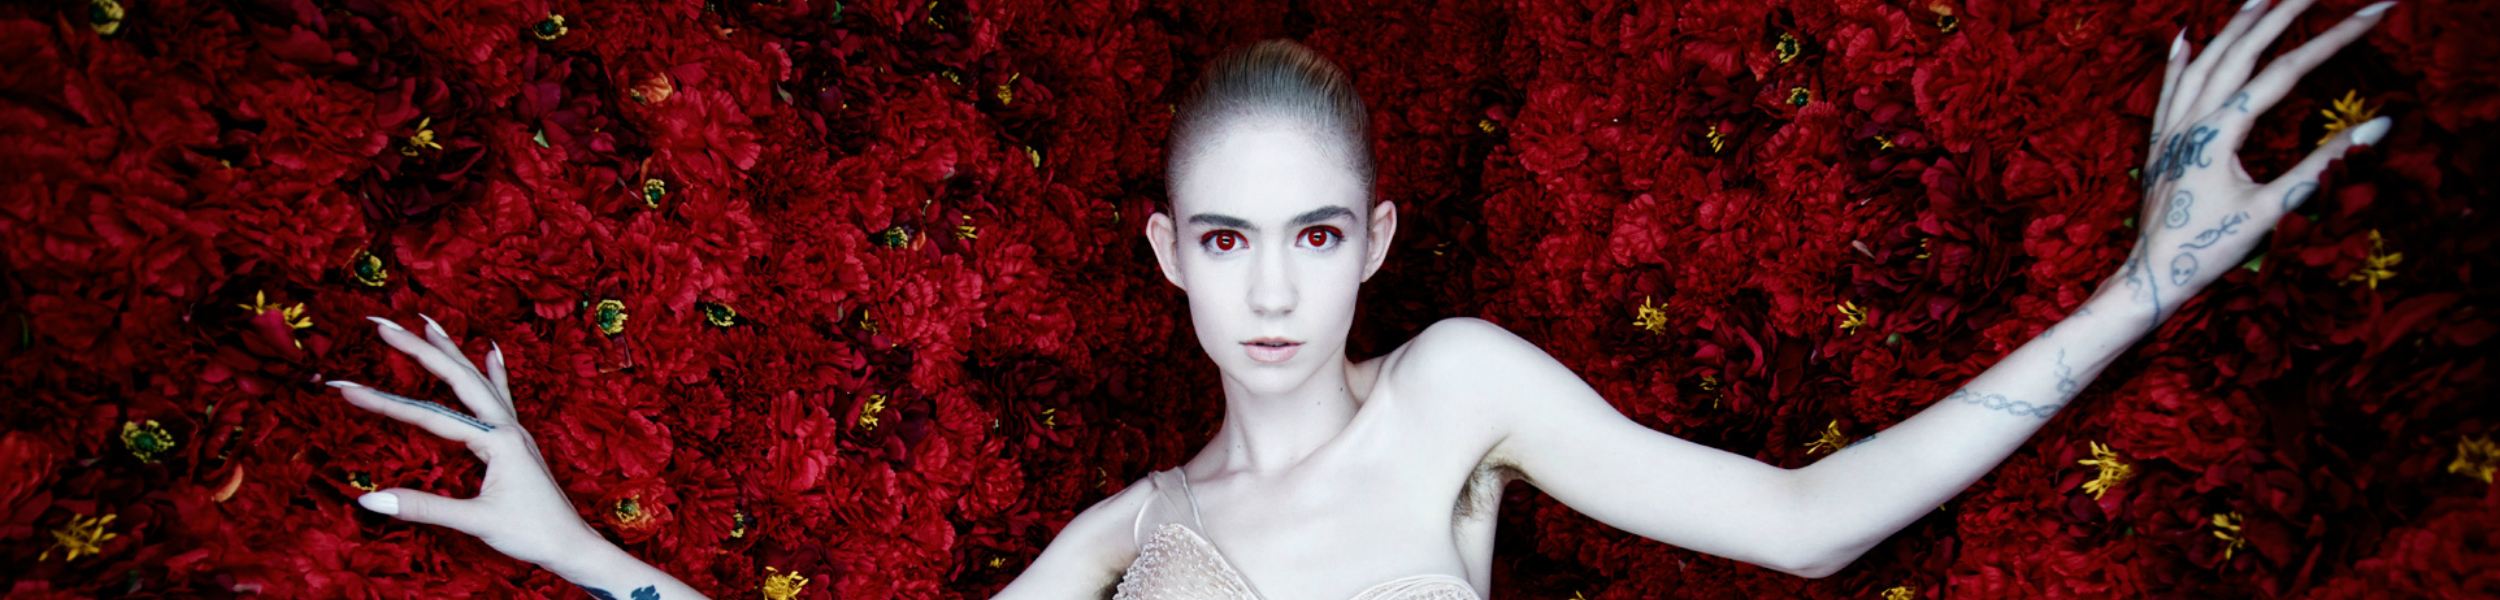 Grimes - Grimes Cancels European Tour Dates